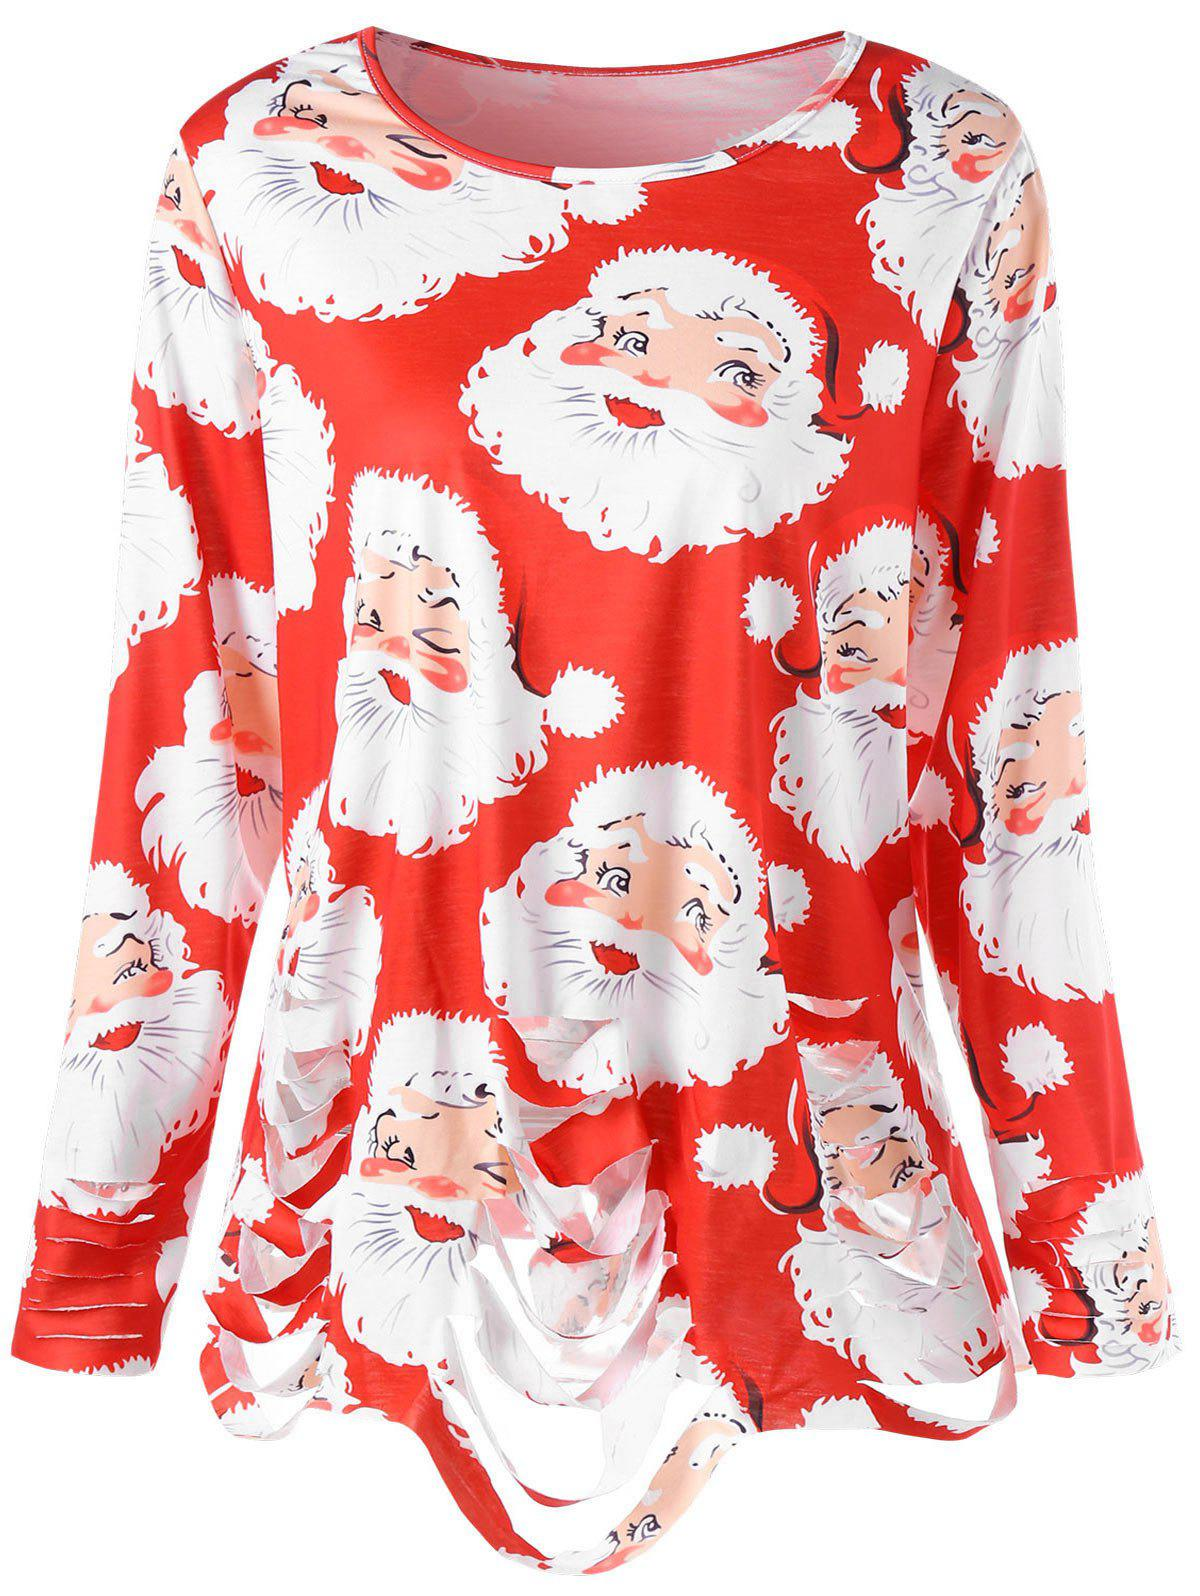 35f3a811c 2019 Plus Size Santa Claus Print Ripped Christmas T-shirt | Rosegal.com